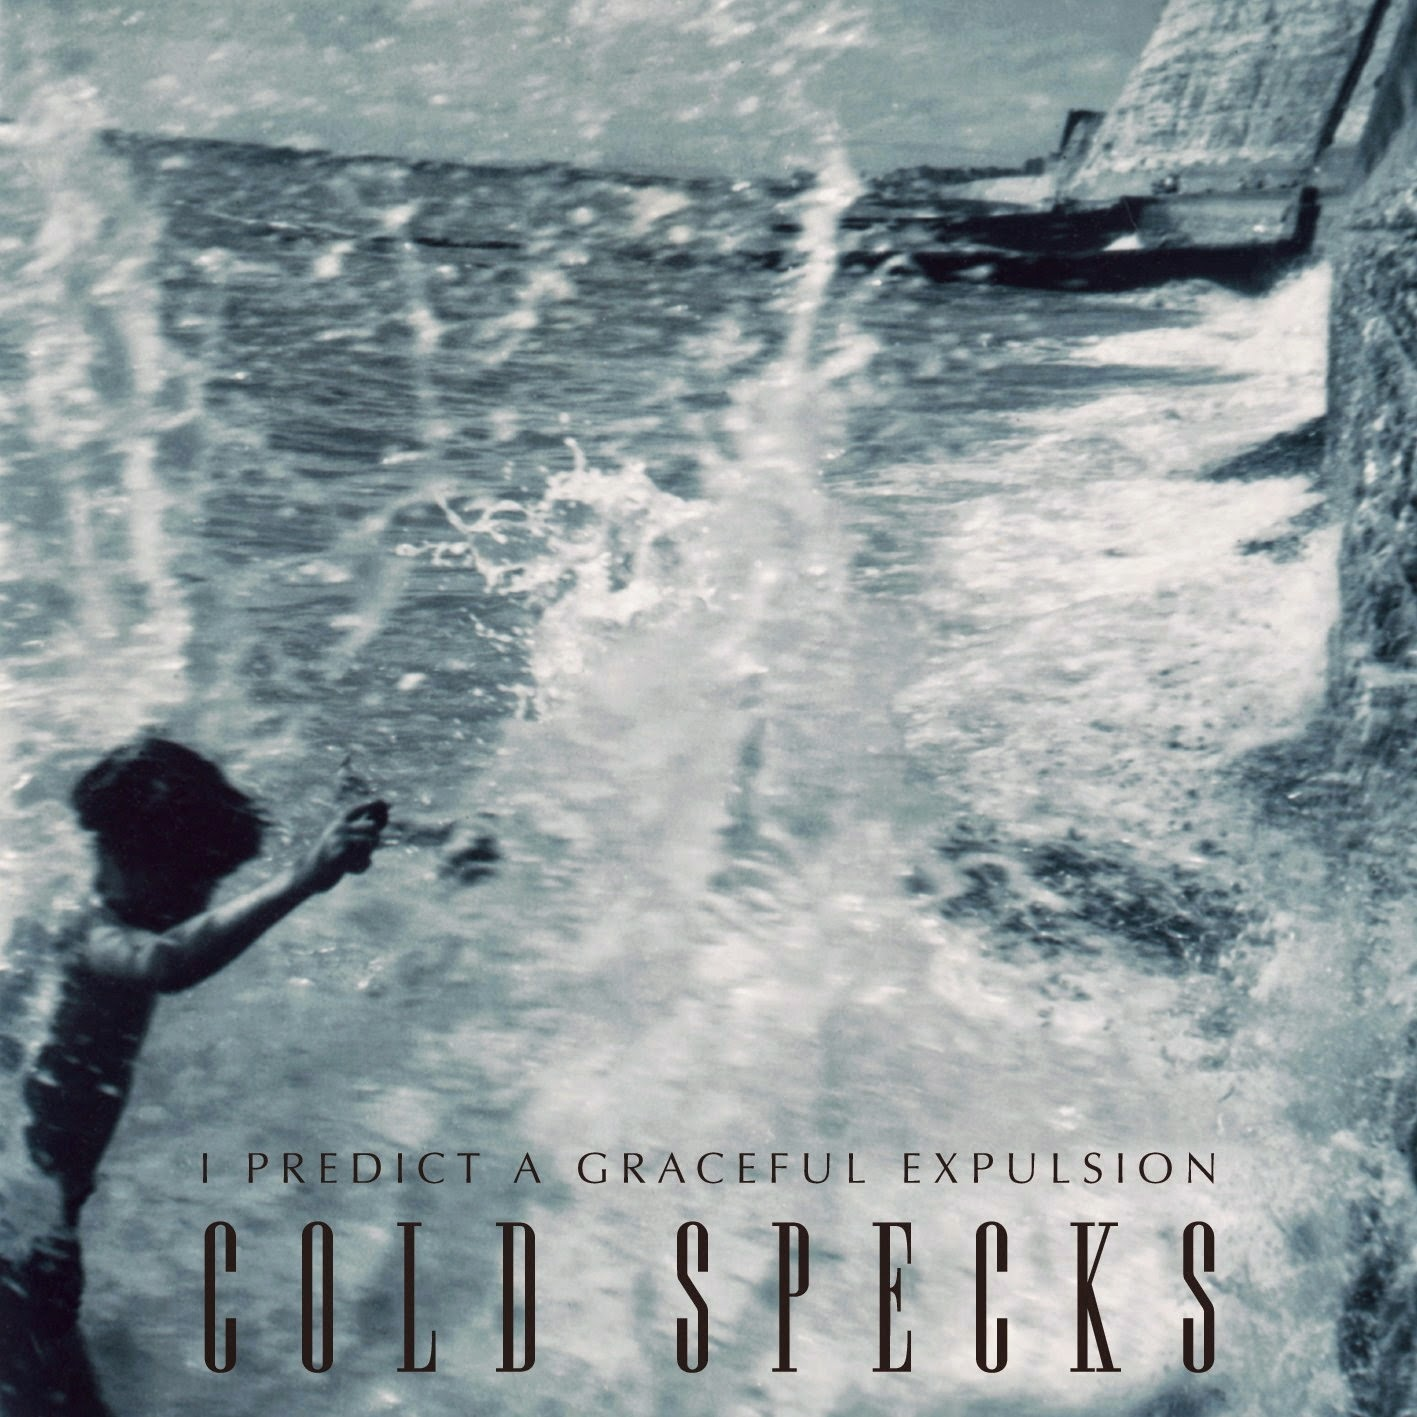 MusicLoad.Com presents Cold Specks